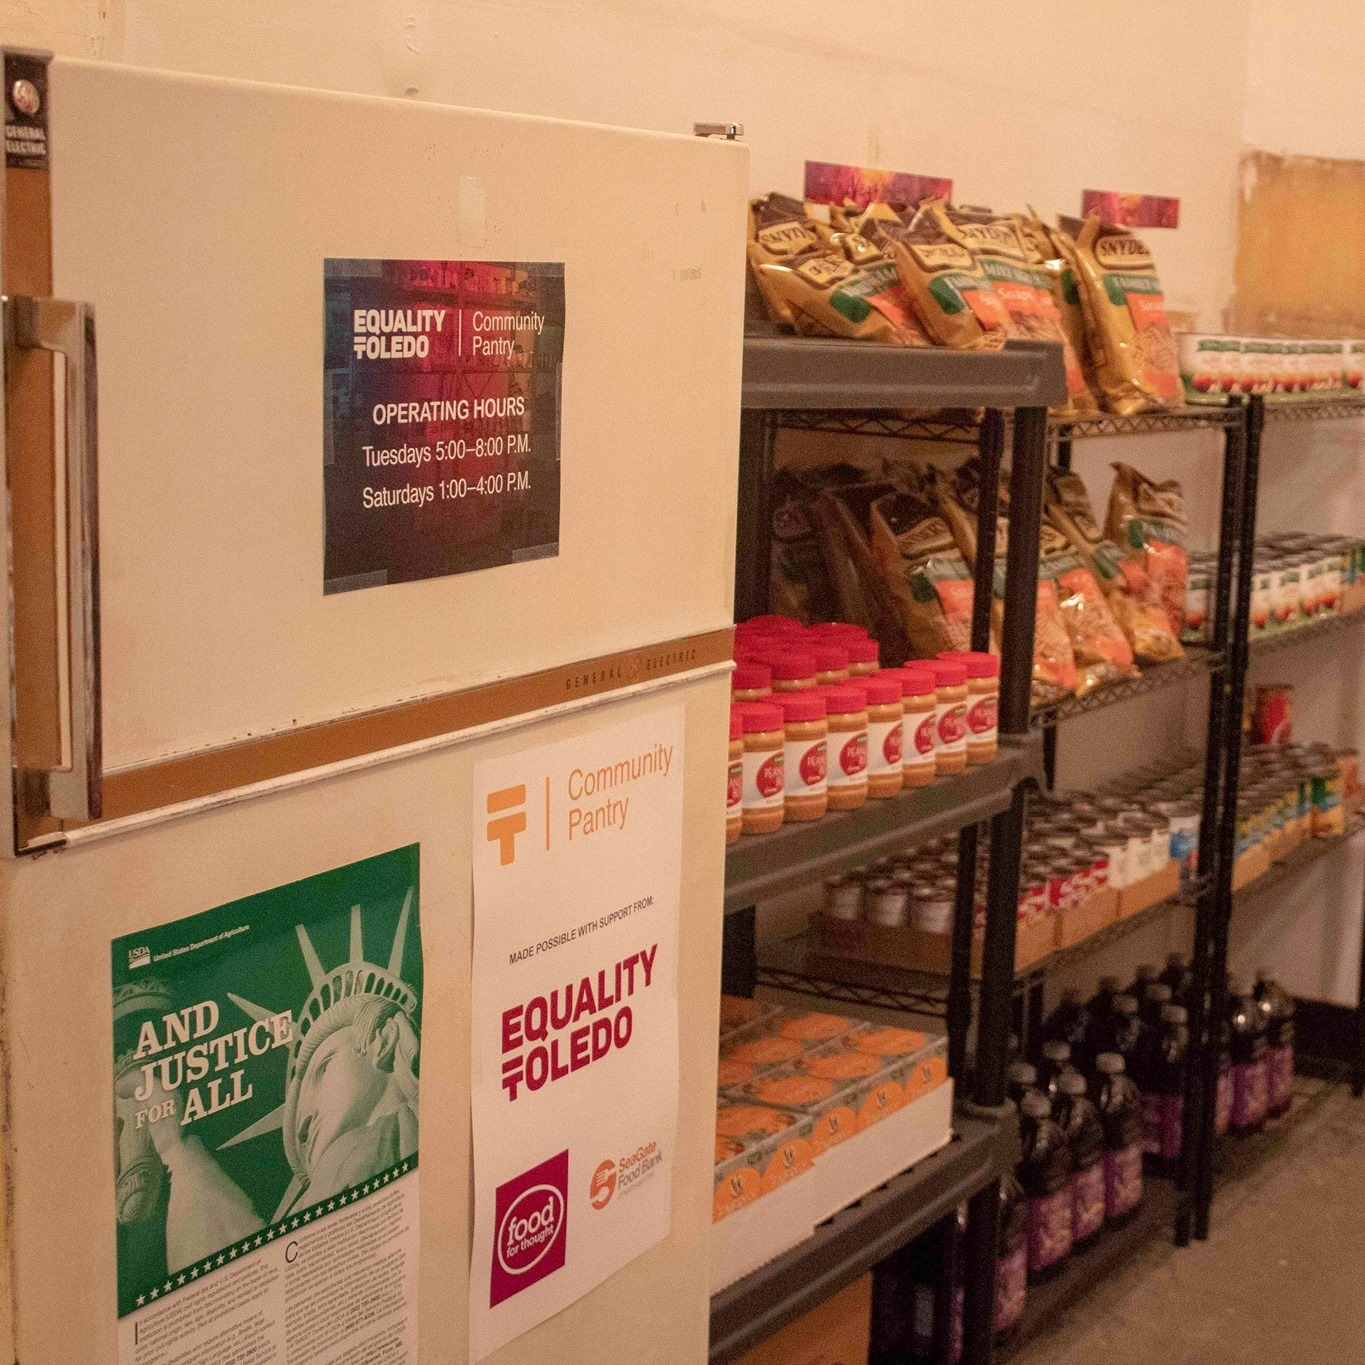 Started in 2018 as a collaboration with Equality Toledo and Toledo Pride to make sure that food-insecure young people and their families have a barrier-free option, the Equality Toledo Community Pantry has served countless families in the Toledo area. -